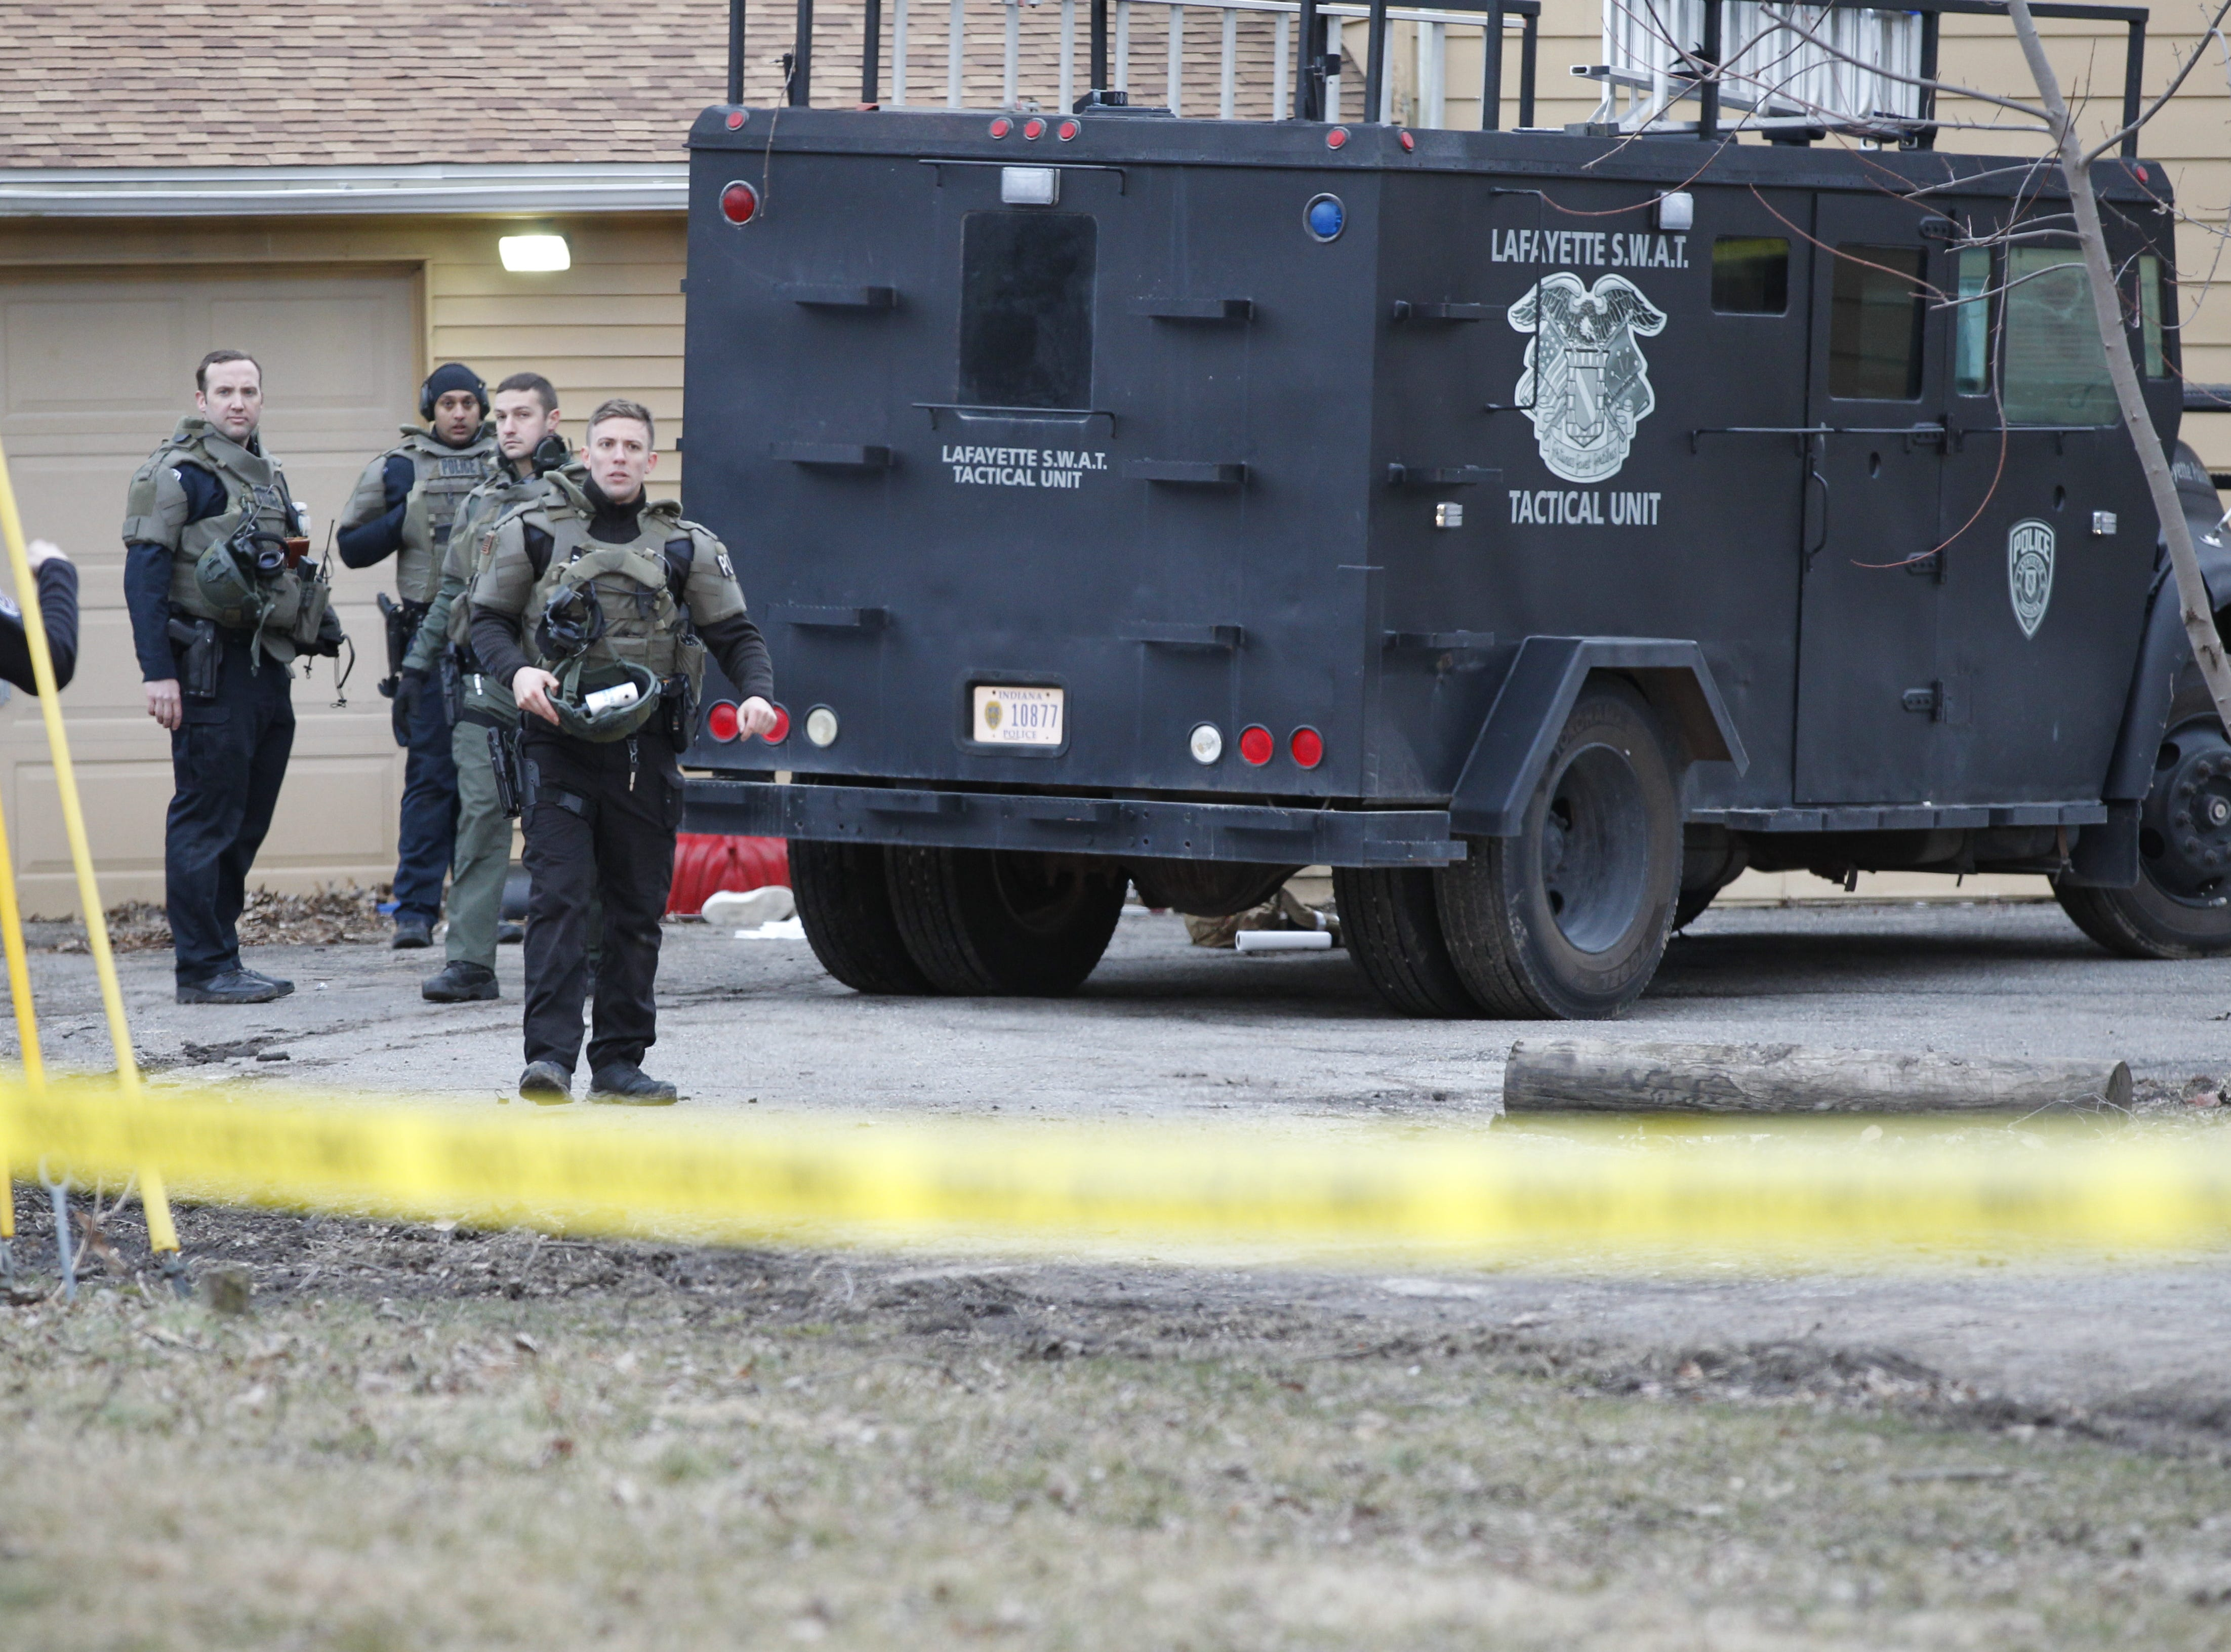 Lafayette police SWAT officers Monday afternoon after the  breaching of a house where 26-year-old Dustin Borders barricaded himself. A SWAT officer shot Borders when officers breached the house. Police have not identified which officer fired his weapon.